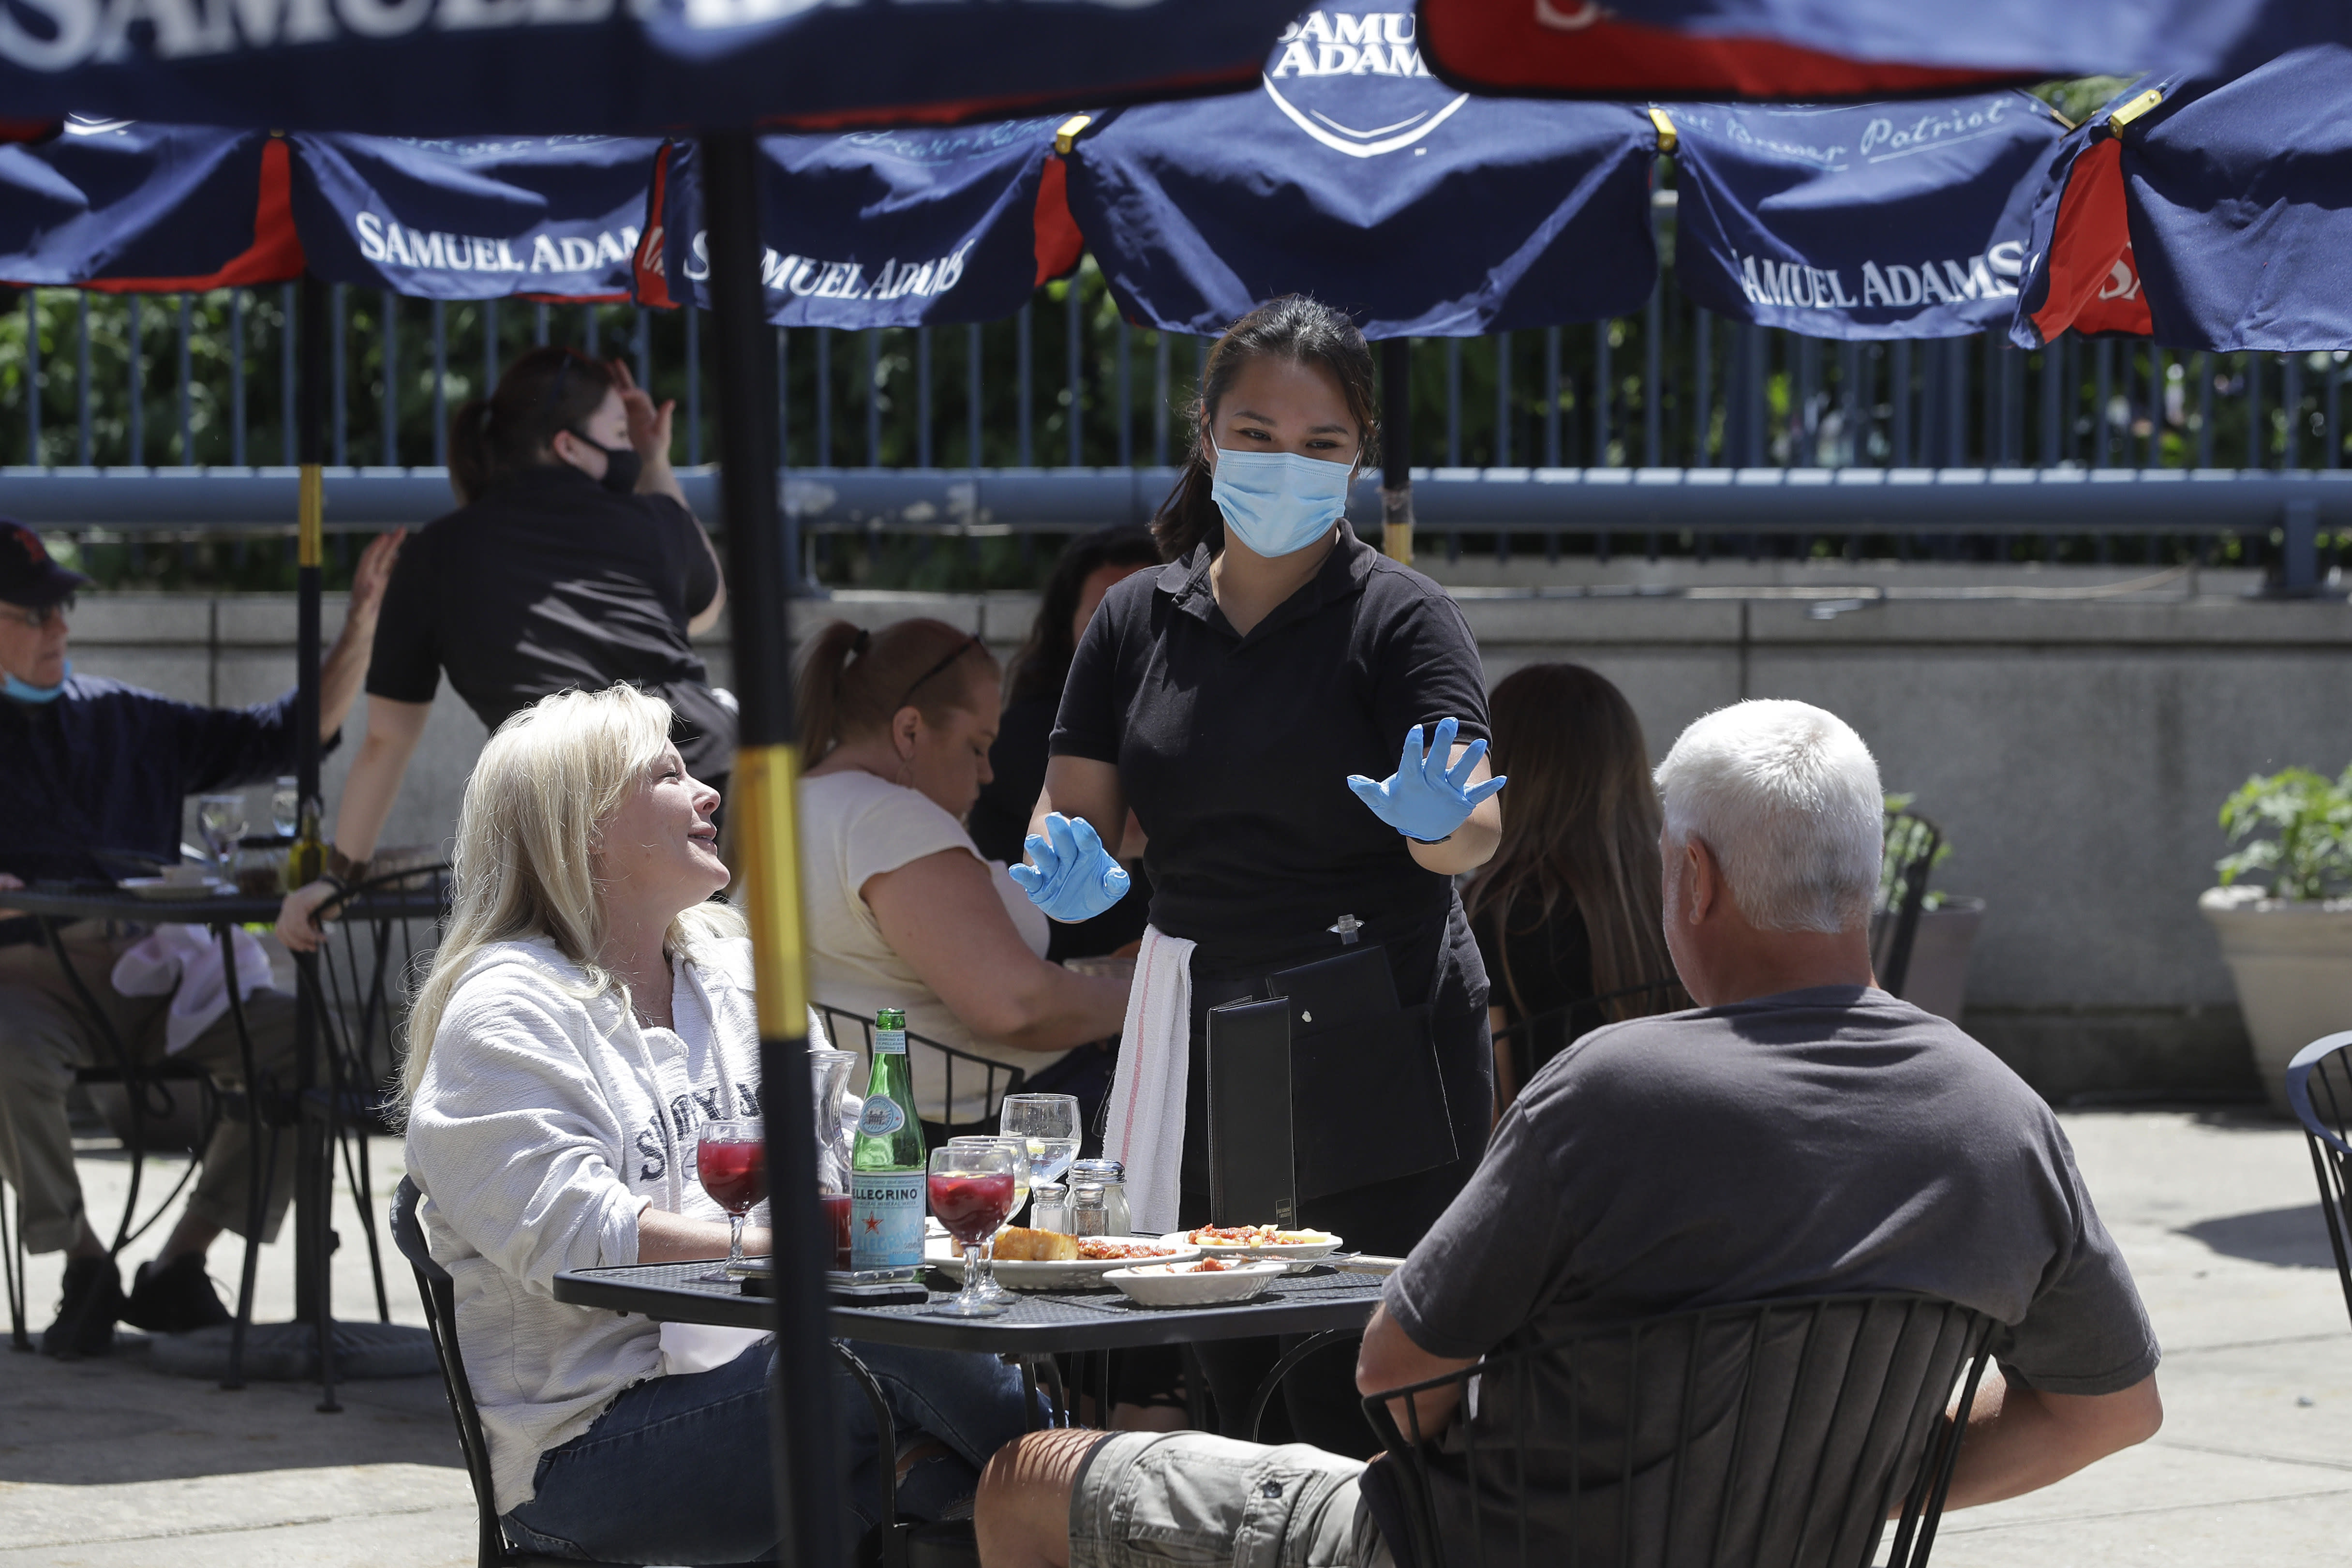 OpenTable CEO says 25% of America's restaurants will close for good due to coronavirus